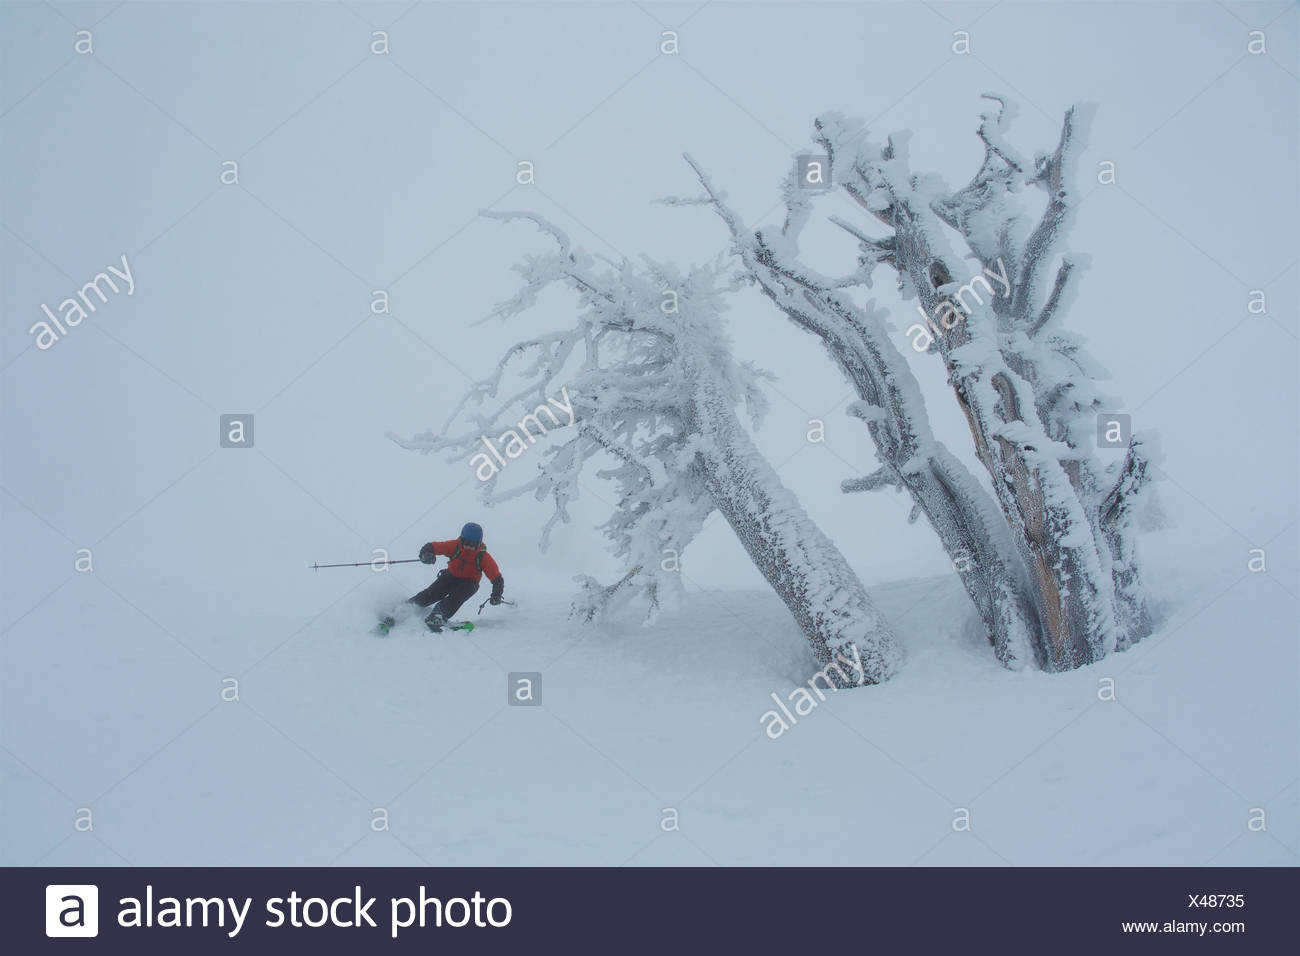 A teen boy skiing in foggy, whiteout conditions near rime covered trees. - Stock Image